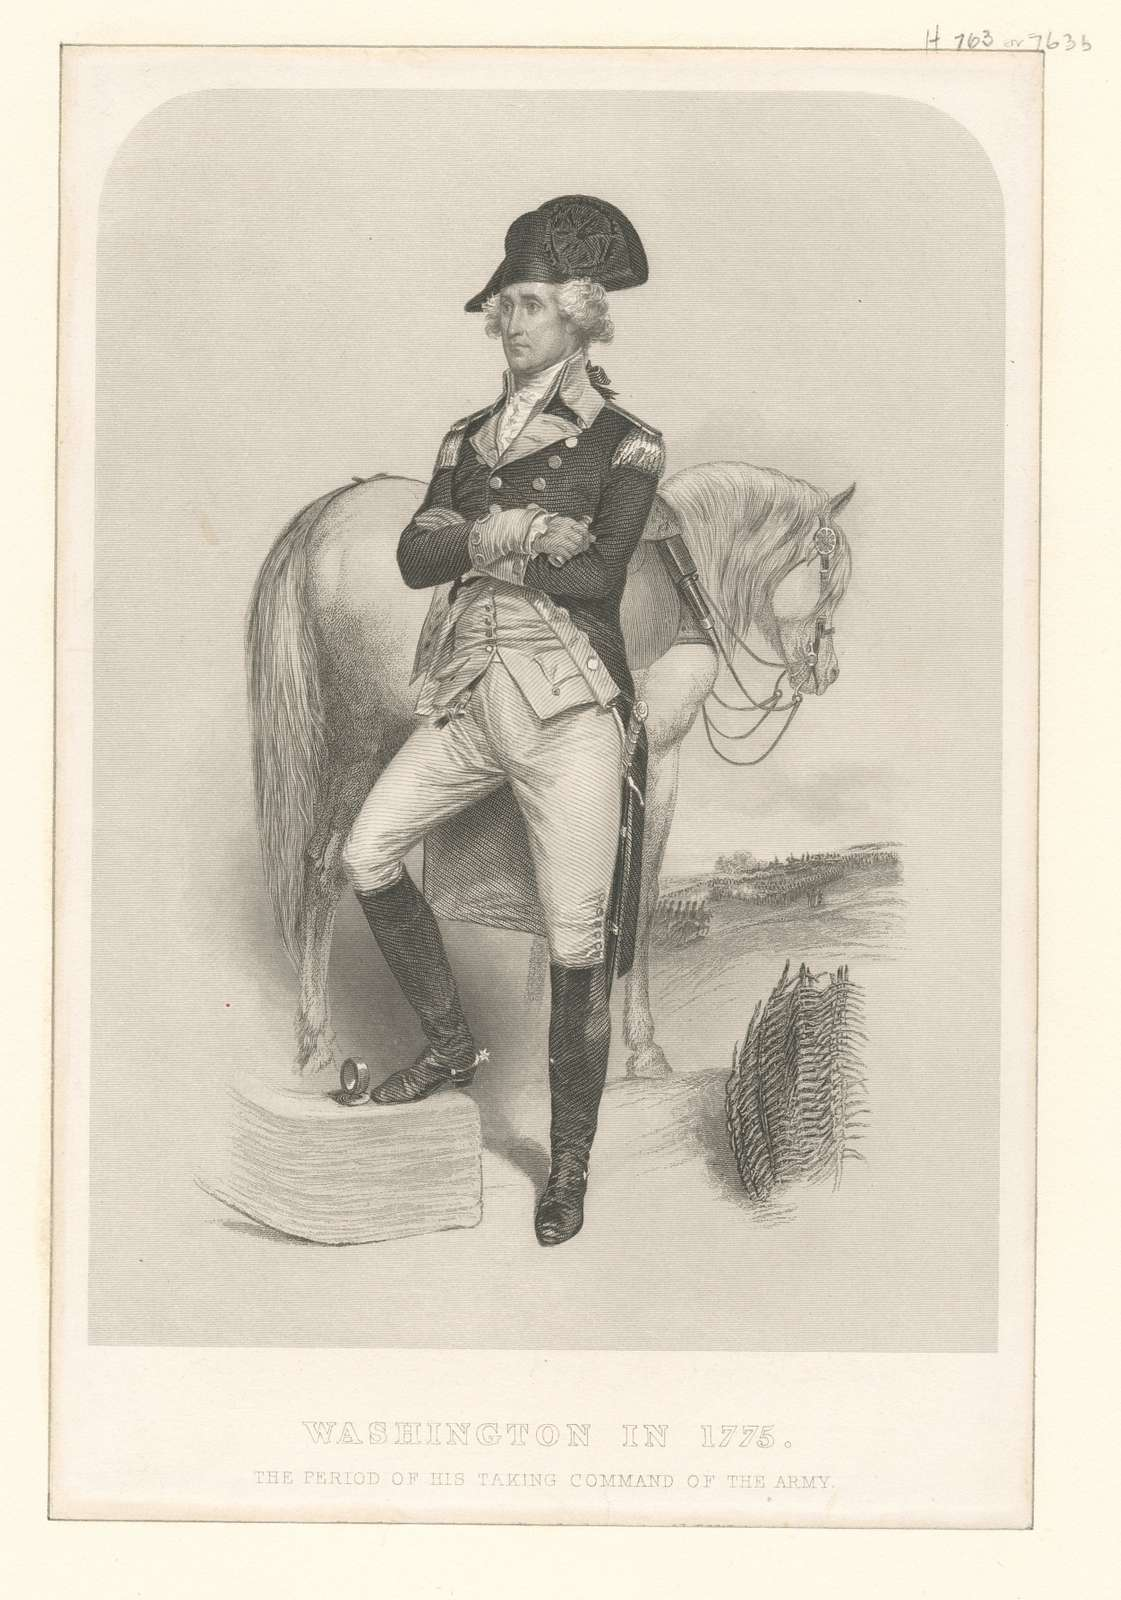 Washington in 1775, the period of his taking command of the army.